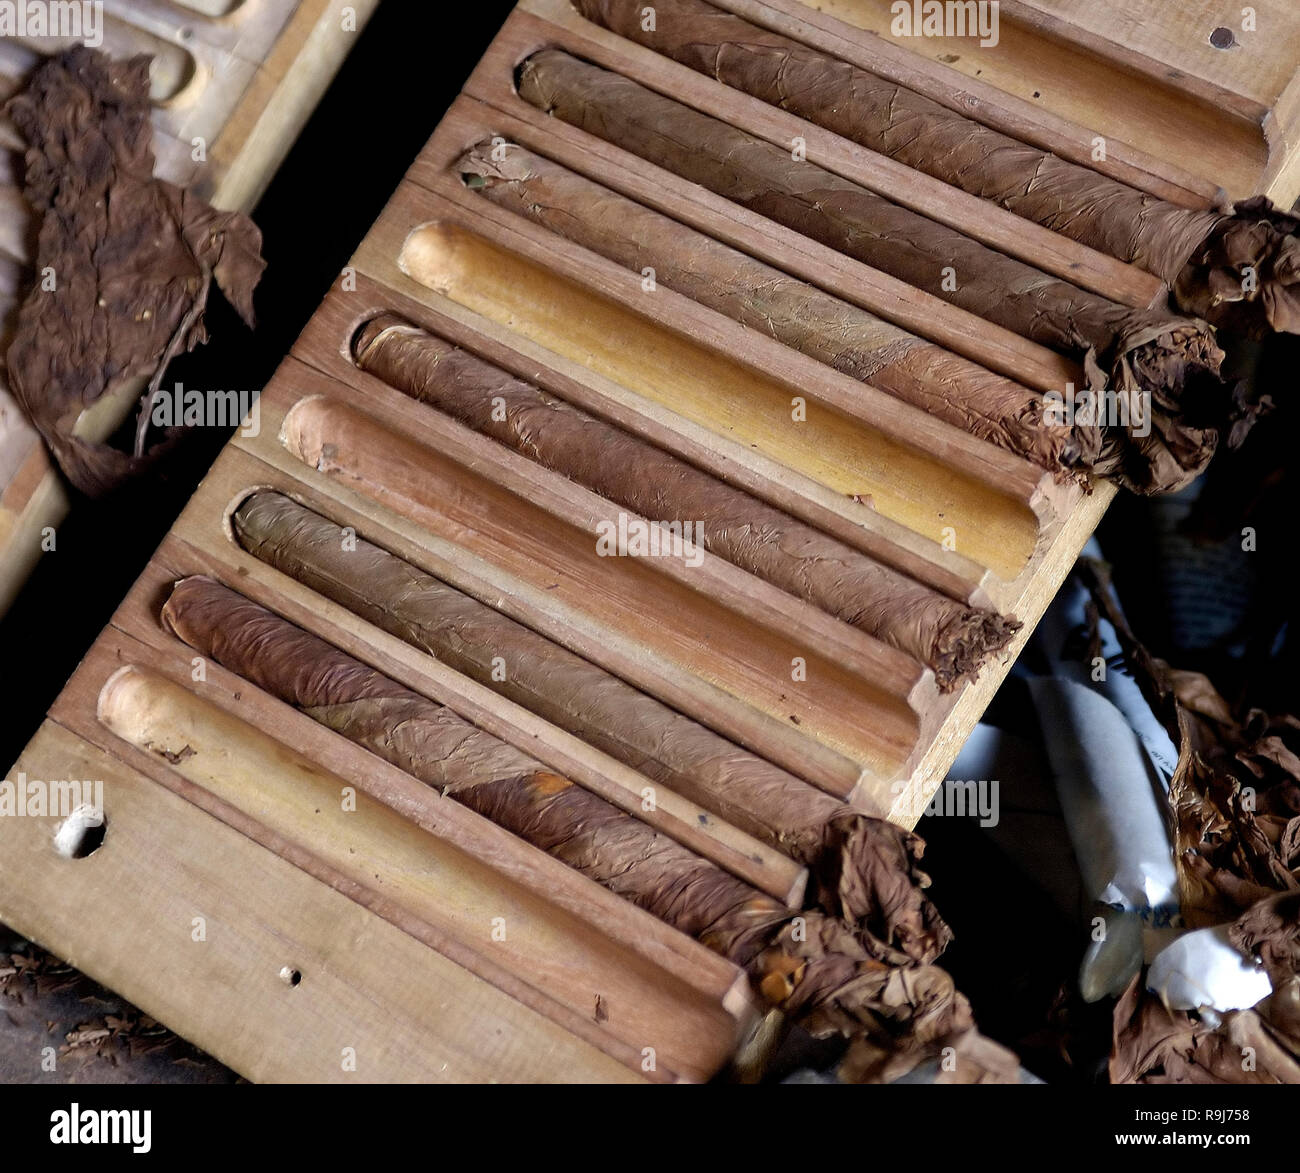 Closeup of handmade cigars from Cuban tobacco leaves. Traditional manufacture of cigars in Cuba - Stock Image